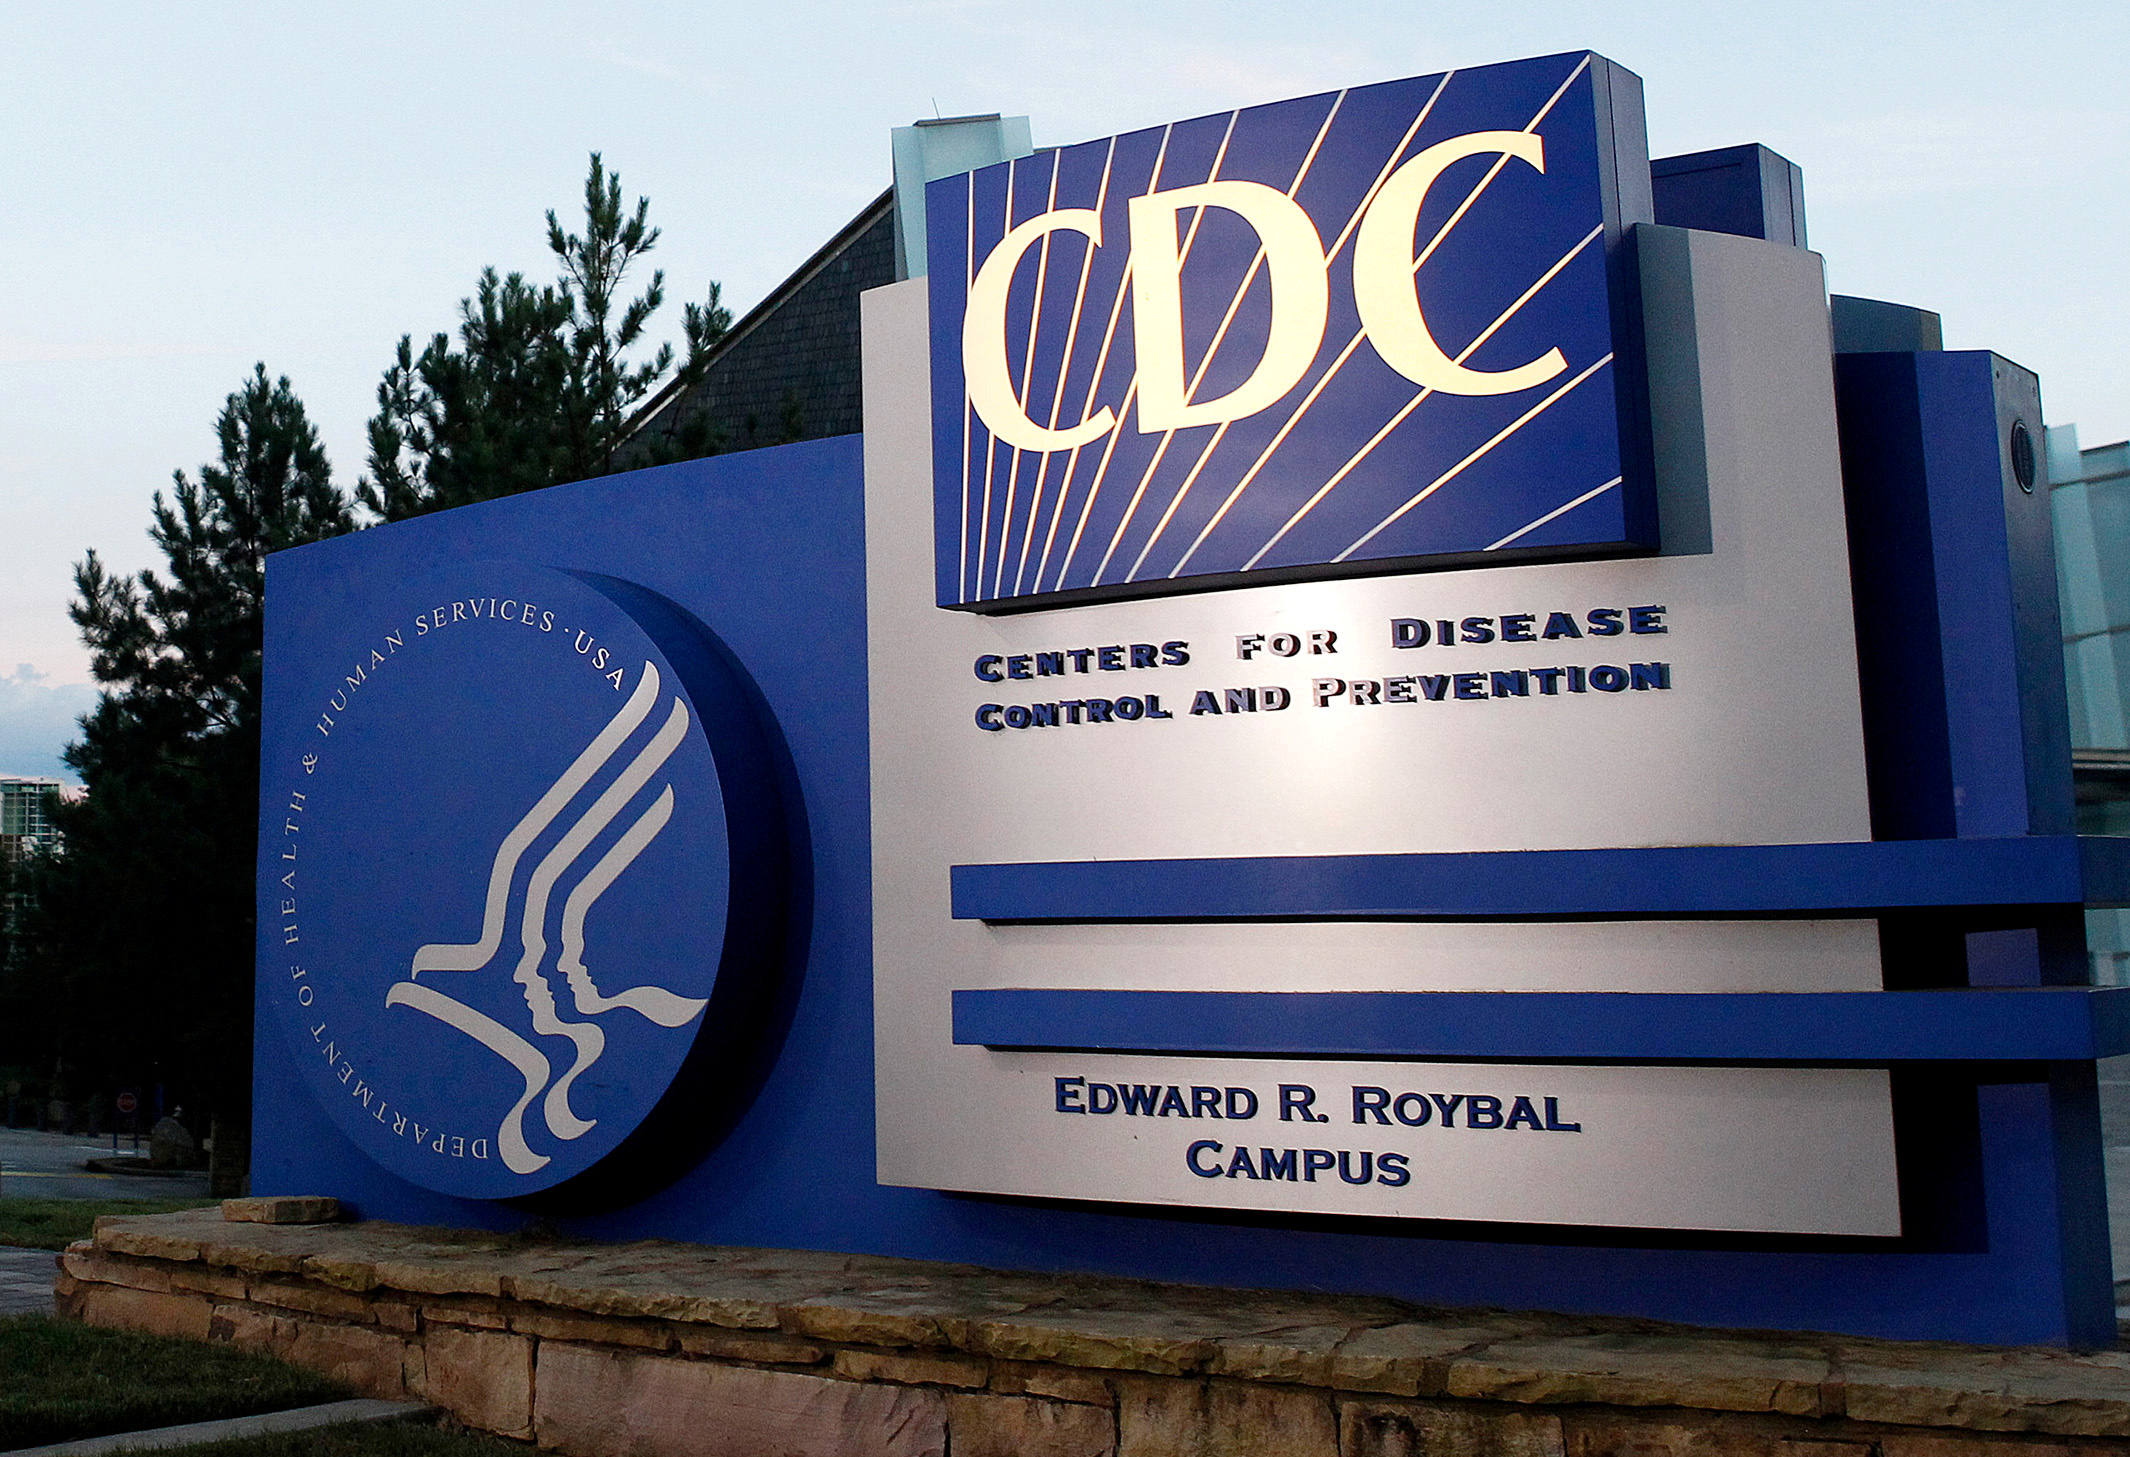 FILE PHOTO: A general view of the Centers for Disease Control and Prevention (CDC) headquarters in Atlanta, Georgia September 30, 2014. REUTERS/Tami Chappell